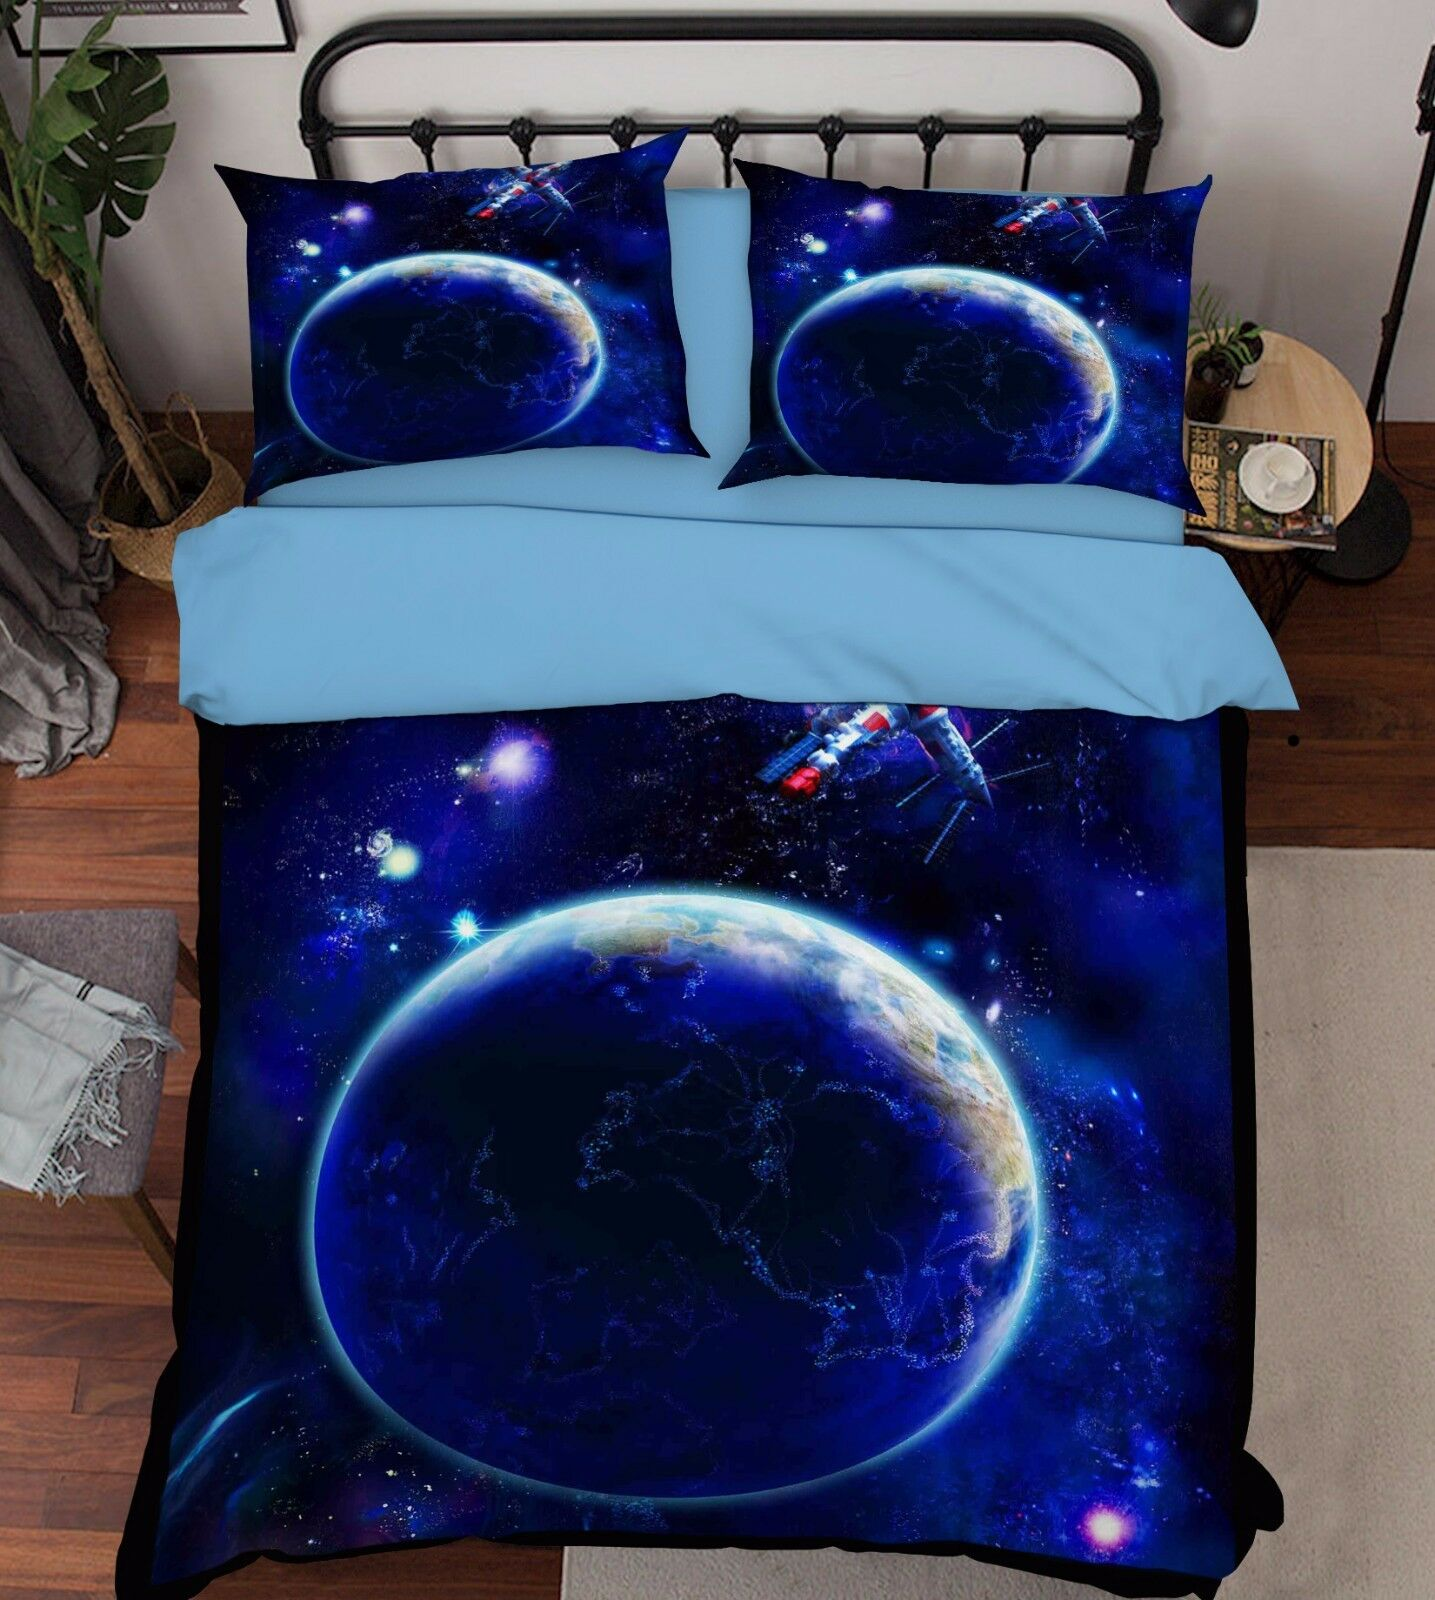 3D Earth Bule  806 Bed Pillowcases Quilt Duvet Cover Set Single Queen UK Summer